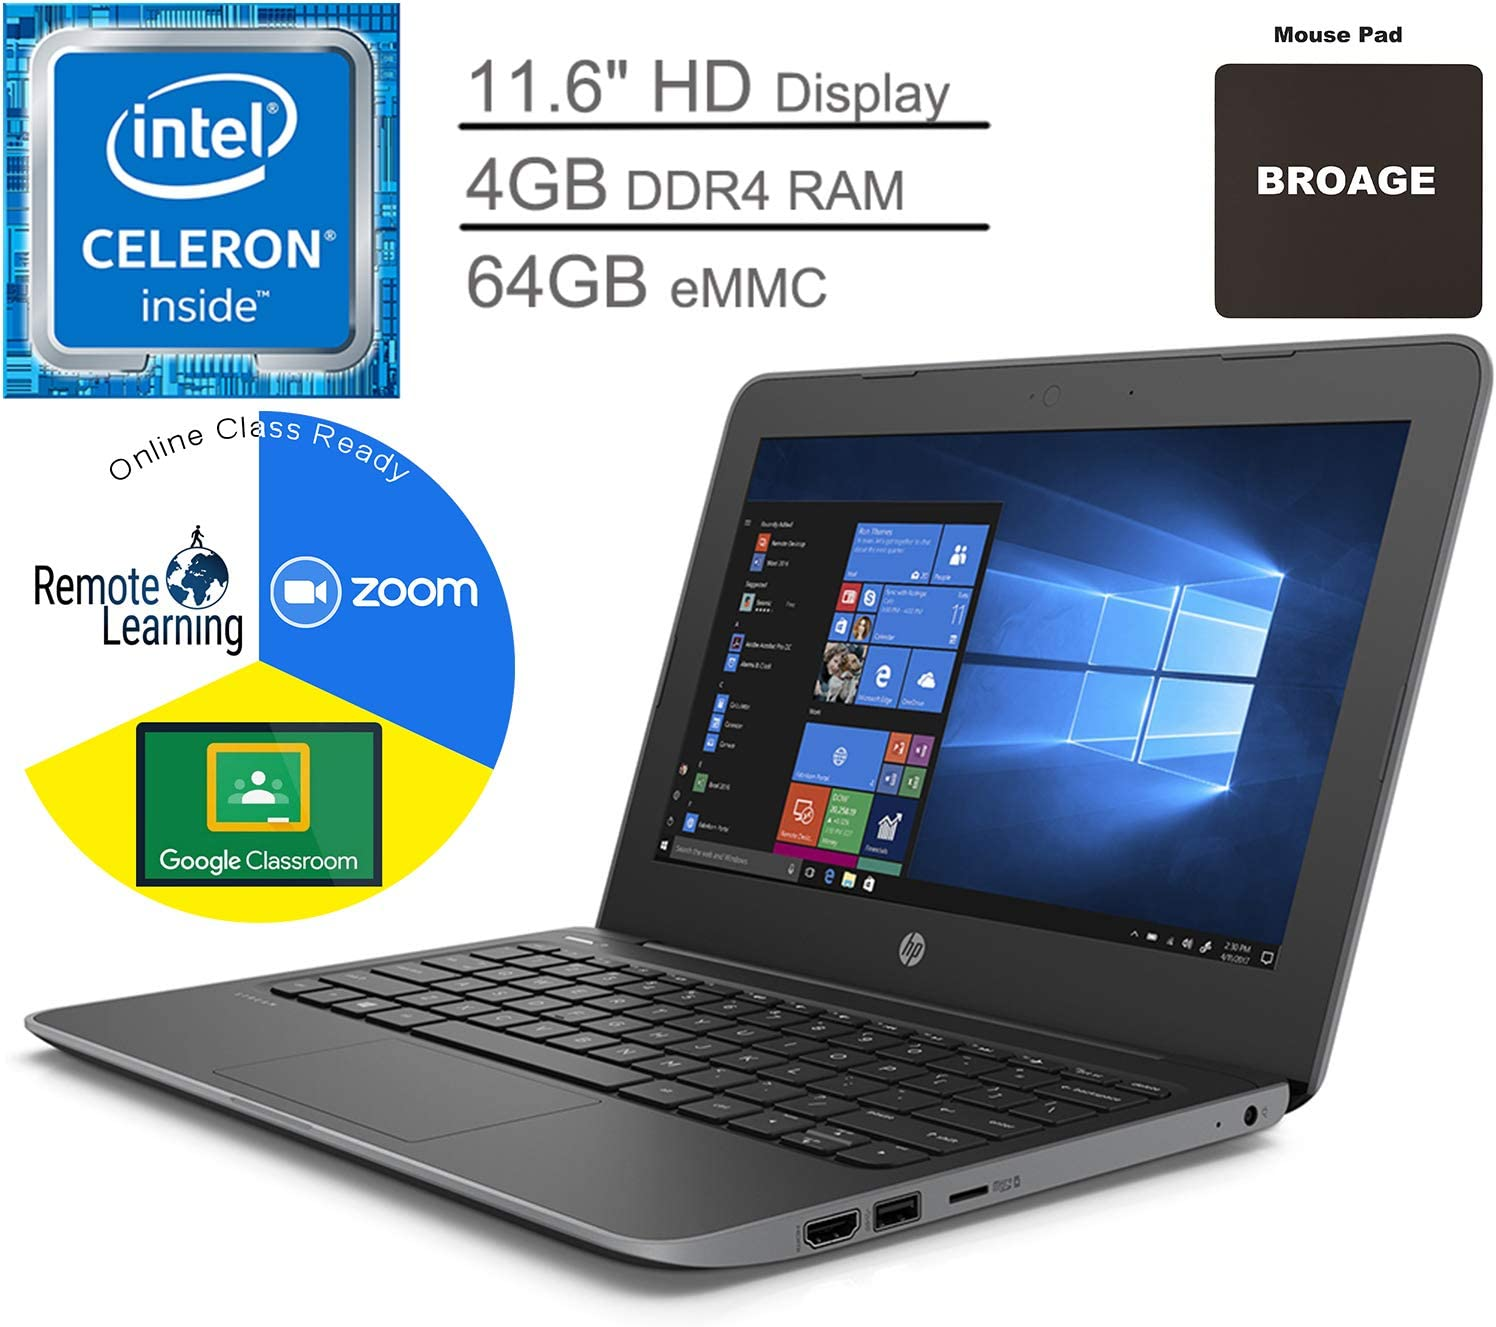 "HP Stream 11 Pro G5 11.6"" Laptop Computer for Business or Education_ Intel Celeron N4000 up to 2.6GHz_ 4GB DDR4 RAM, 64GB eMMC_ Webcam_ Microphone_ Online Class Ready_ Windows 10 Pro_ BROAGE Mouse Pad"